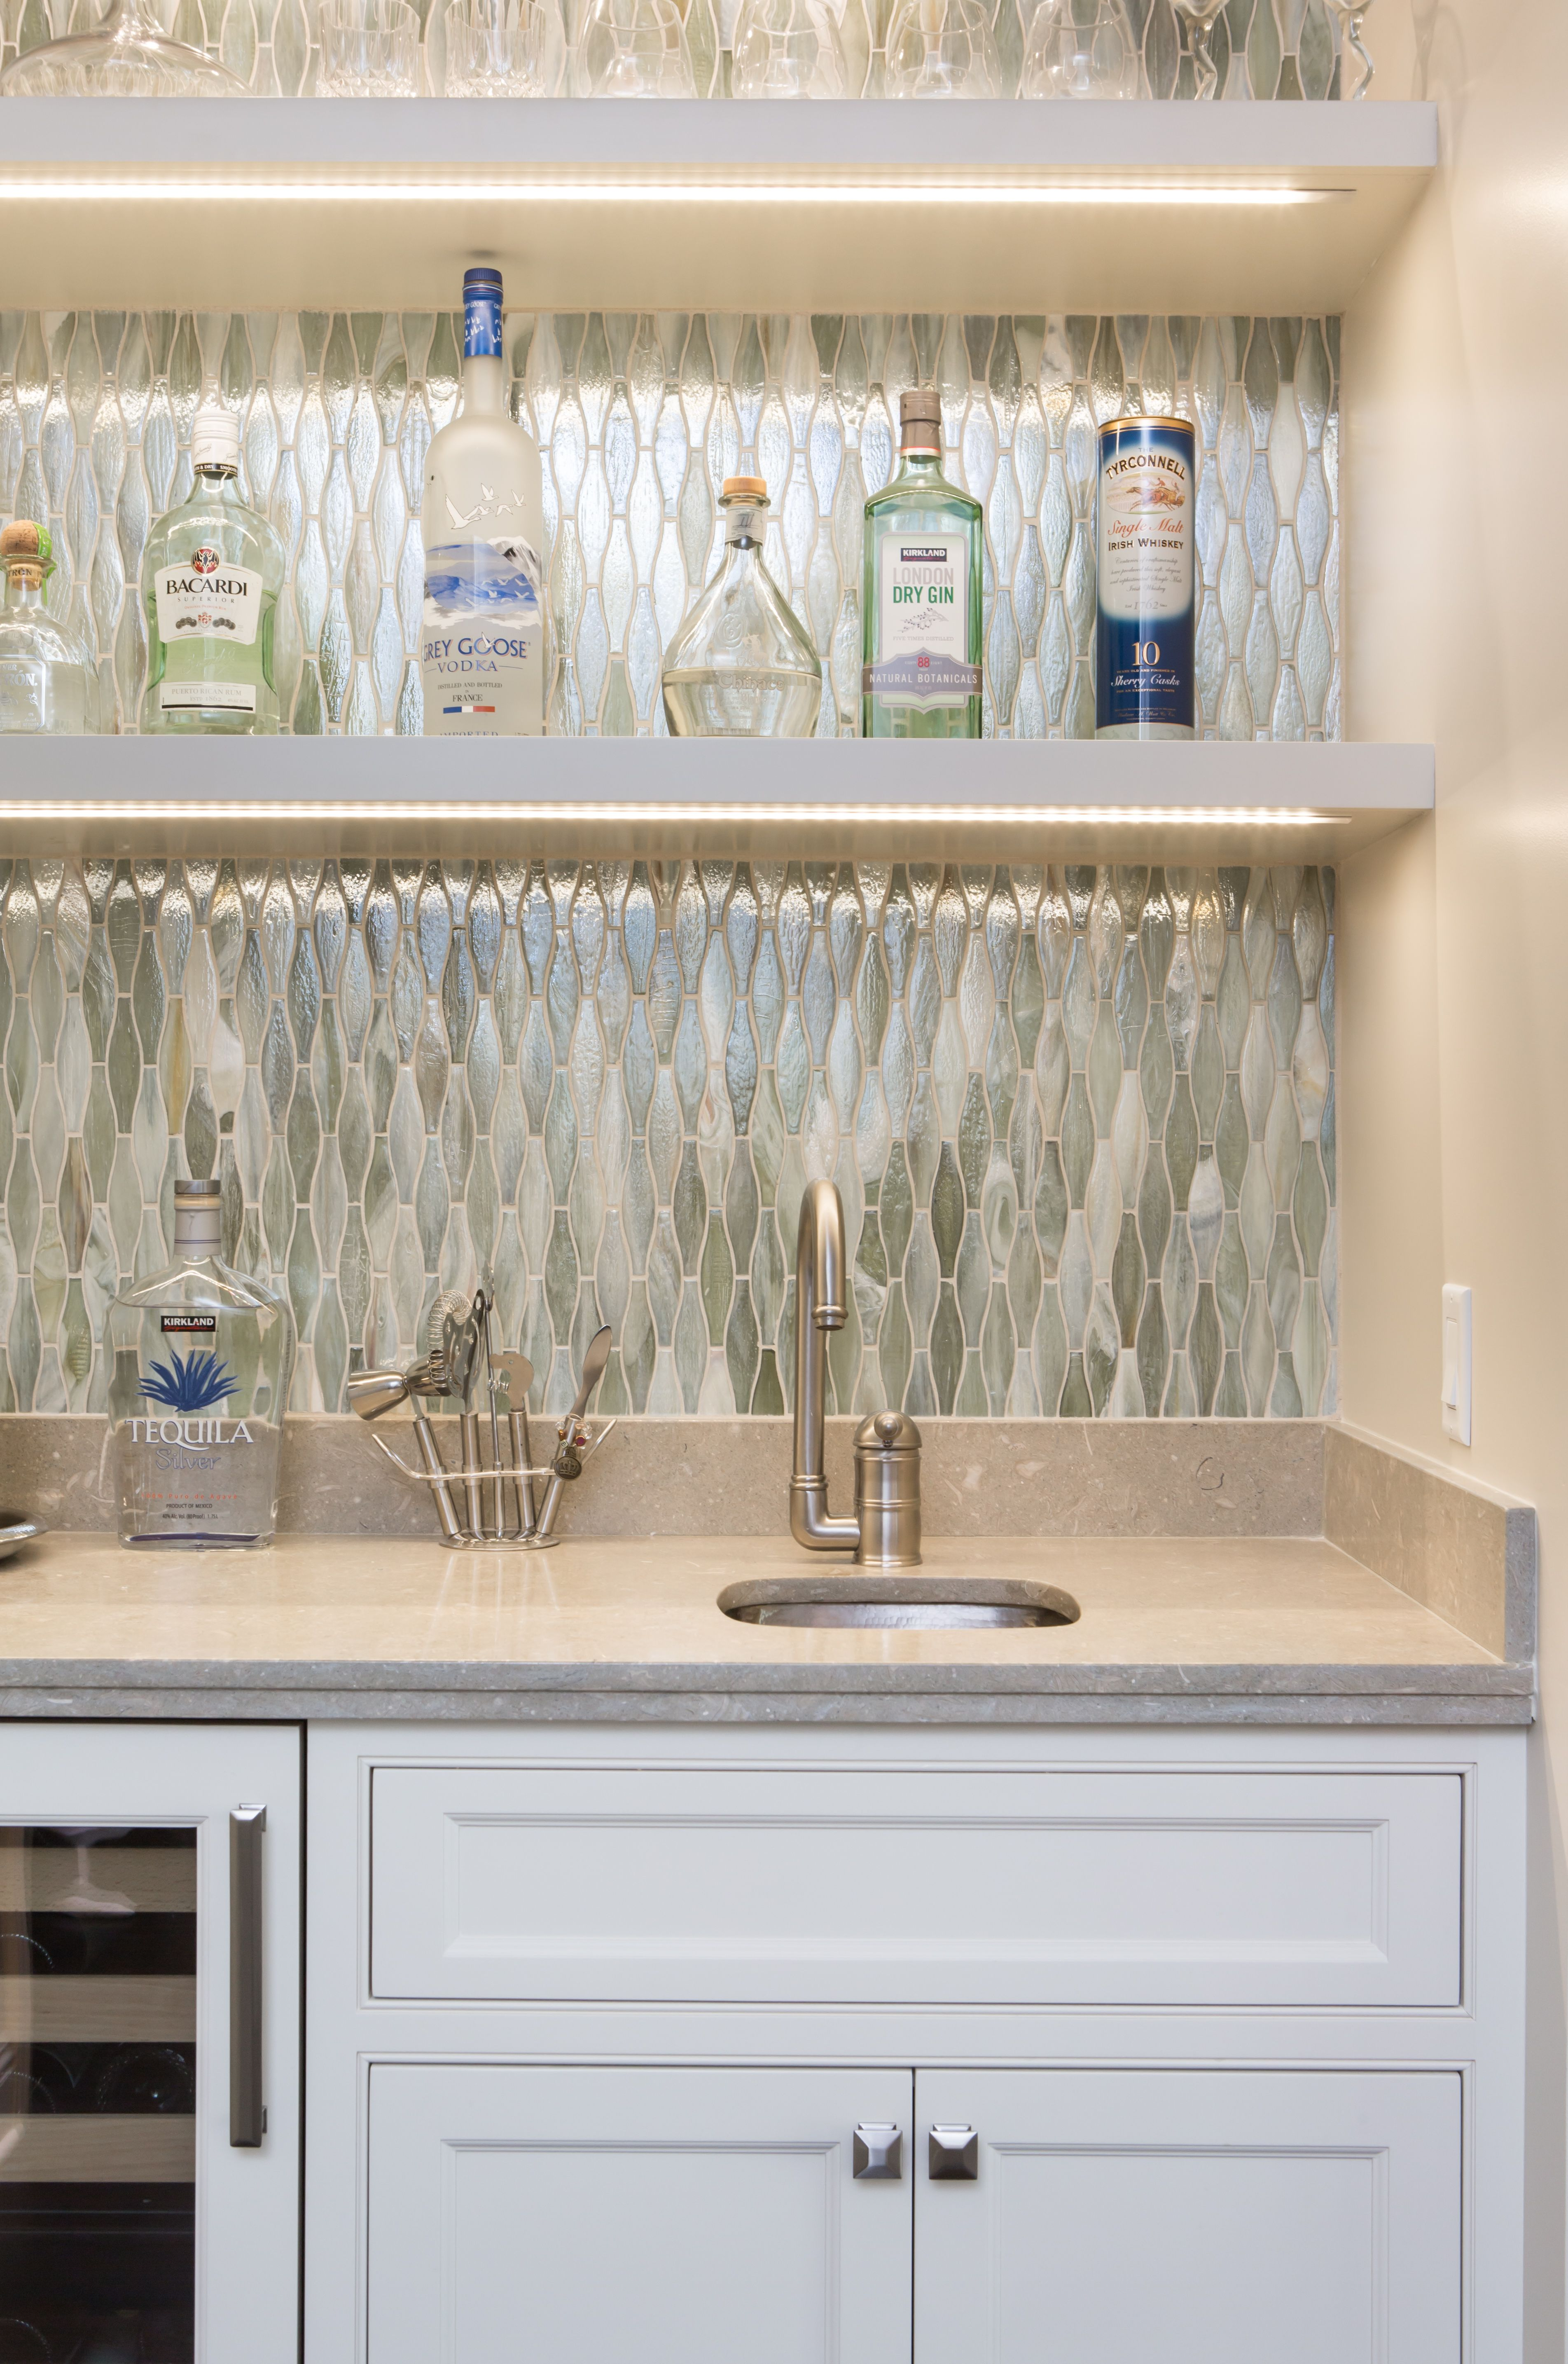 Home Wet Bar By Charmean Neithart Interiors Featuring The Native Trails Rincon Sink In Brushed Nickel Photography Erika Bierman